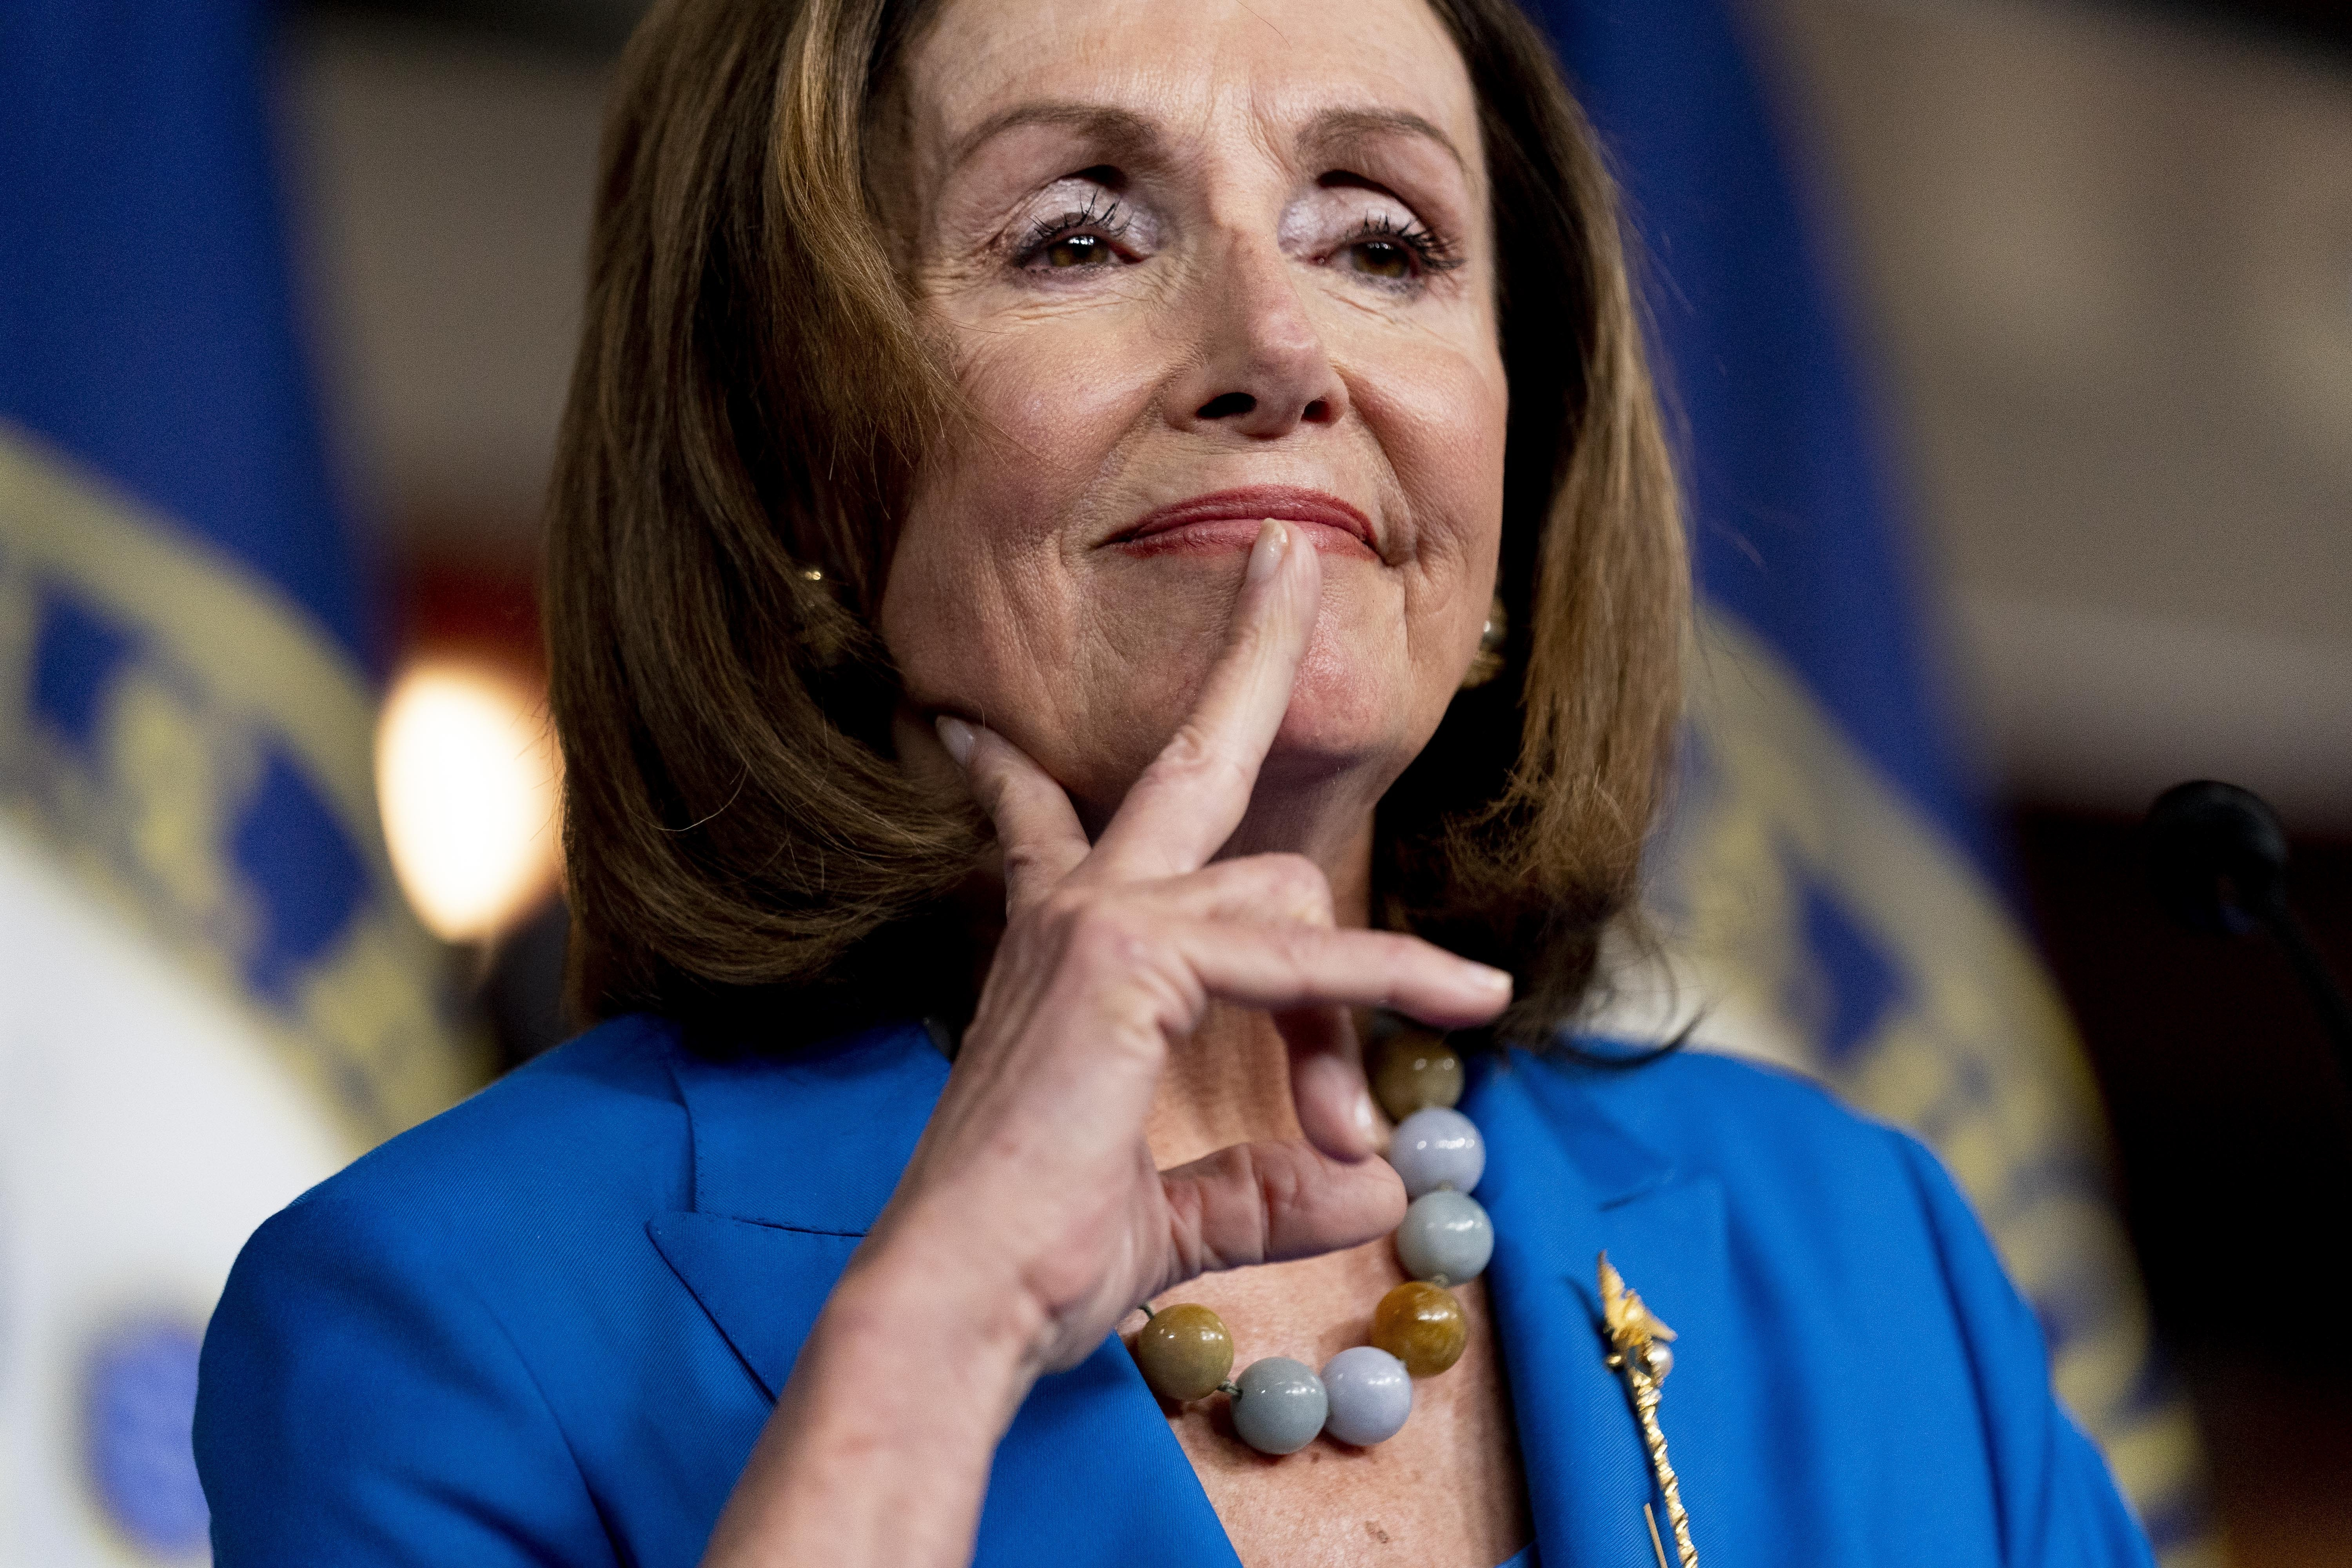 House Speaker Nancy Pelosi of Calif. reacts as she listens to a question from a reporter during her weekly press briefing on Capitol Hill, Thursday, Sept. 30, 2021, in Washington.